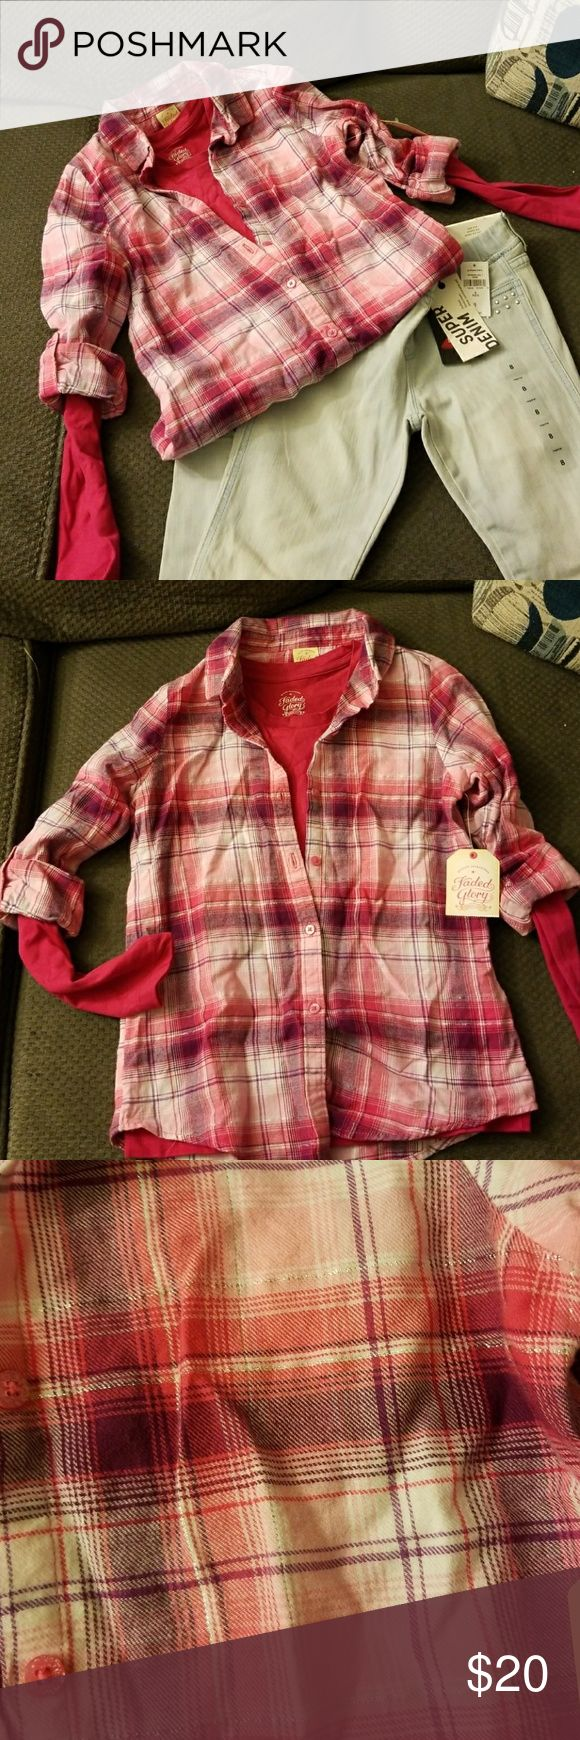 Little Girls Jeans Set Disclaimer...items can be purchased separately.  Cotton plaid long sleeve top along with matching short sleeve top. Capri jeans with silver stick on detail. Girls size 8. Shirt by Faded Glory can be purchased alone for $6. Pants by Gap can be purchased alone for $15. Matching Sets